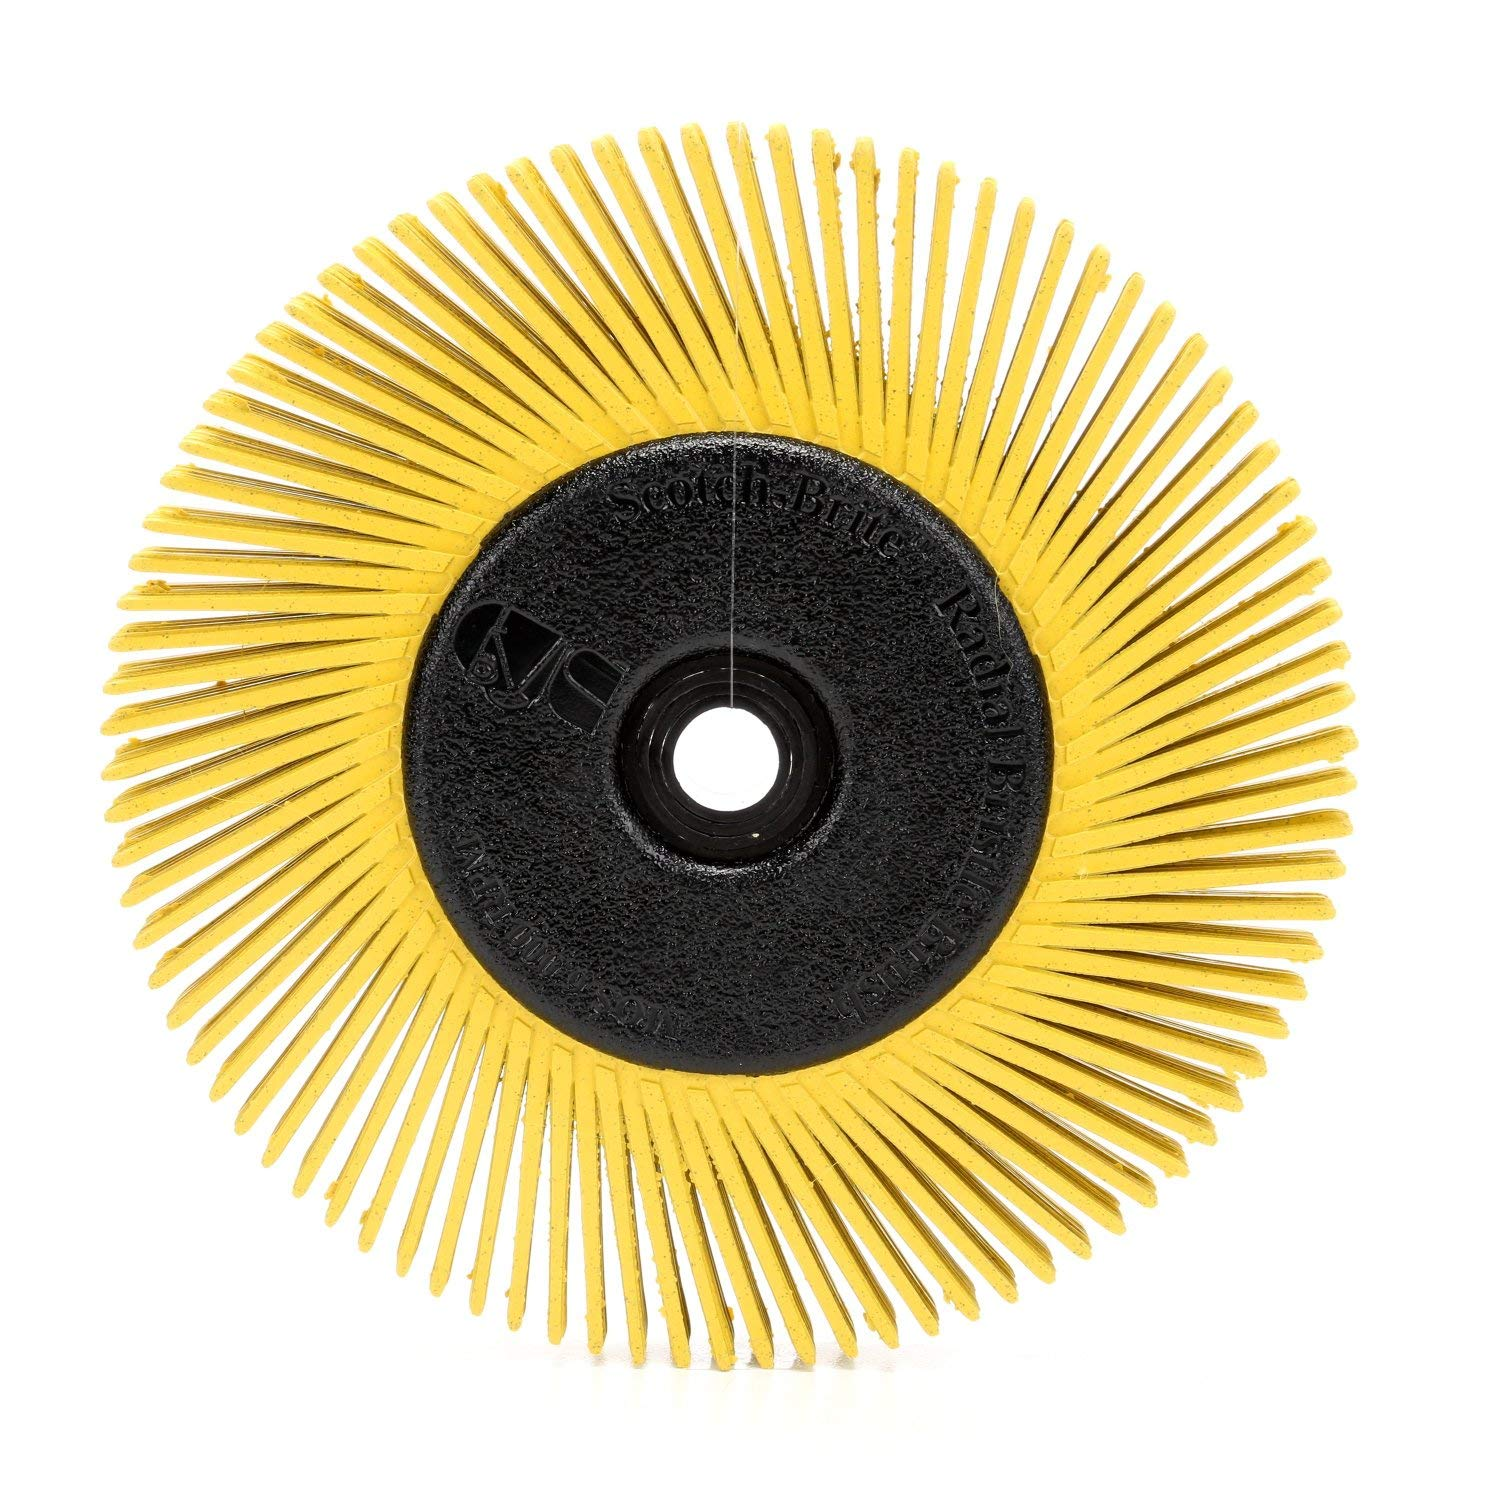 Scotch-Brite Radial Bristle Brush, 6 in x 1/2 in x 1 in 80 With Adapter